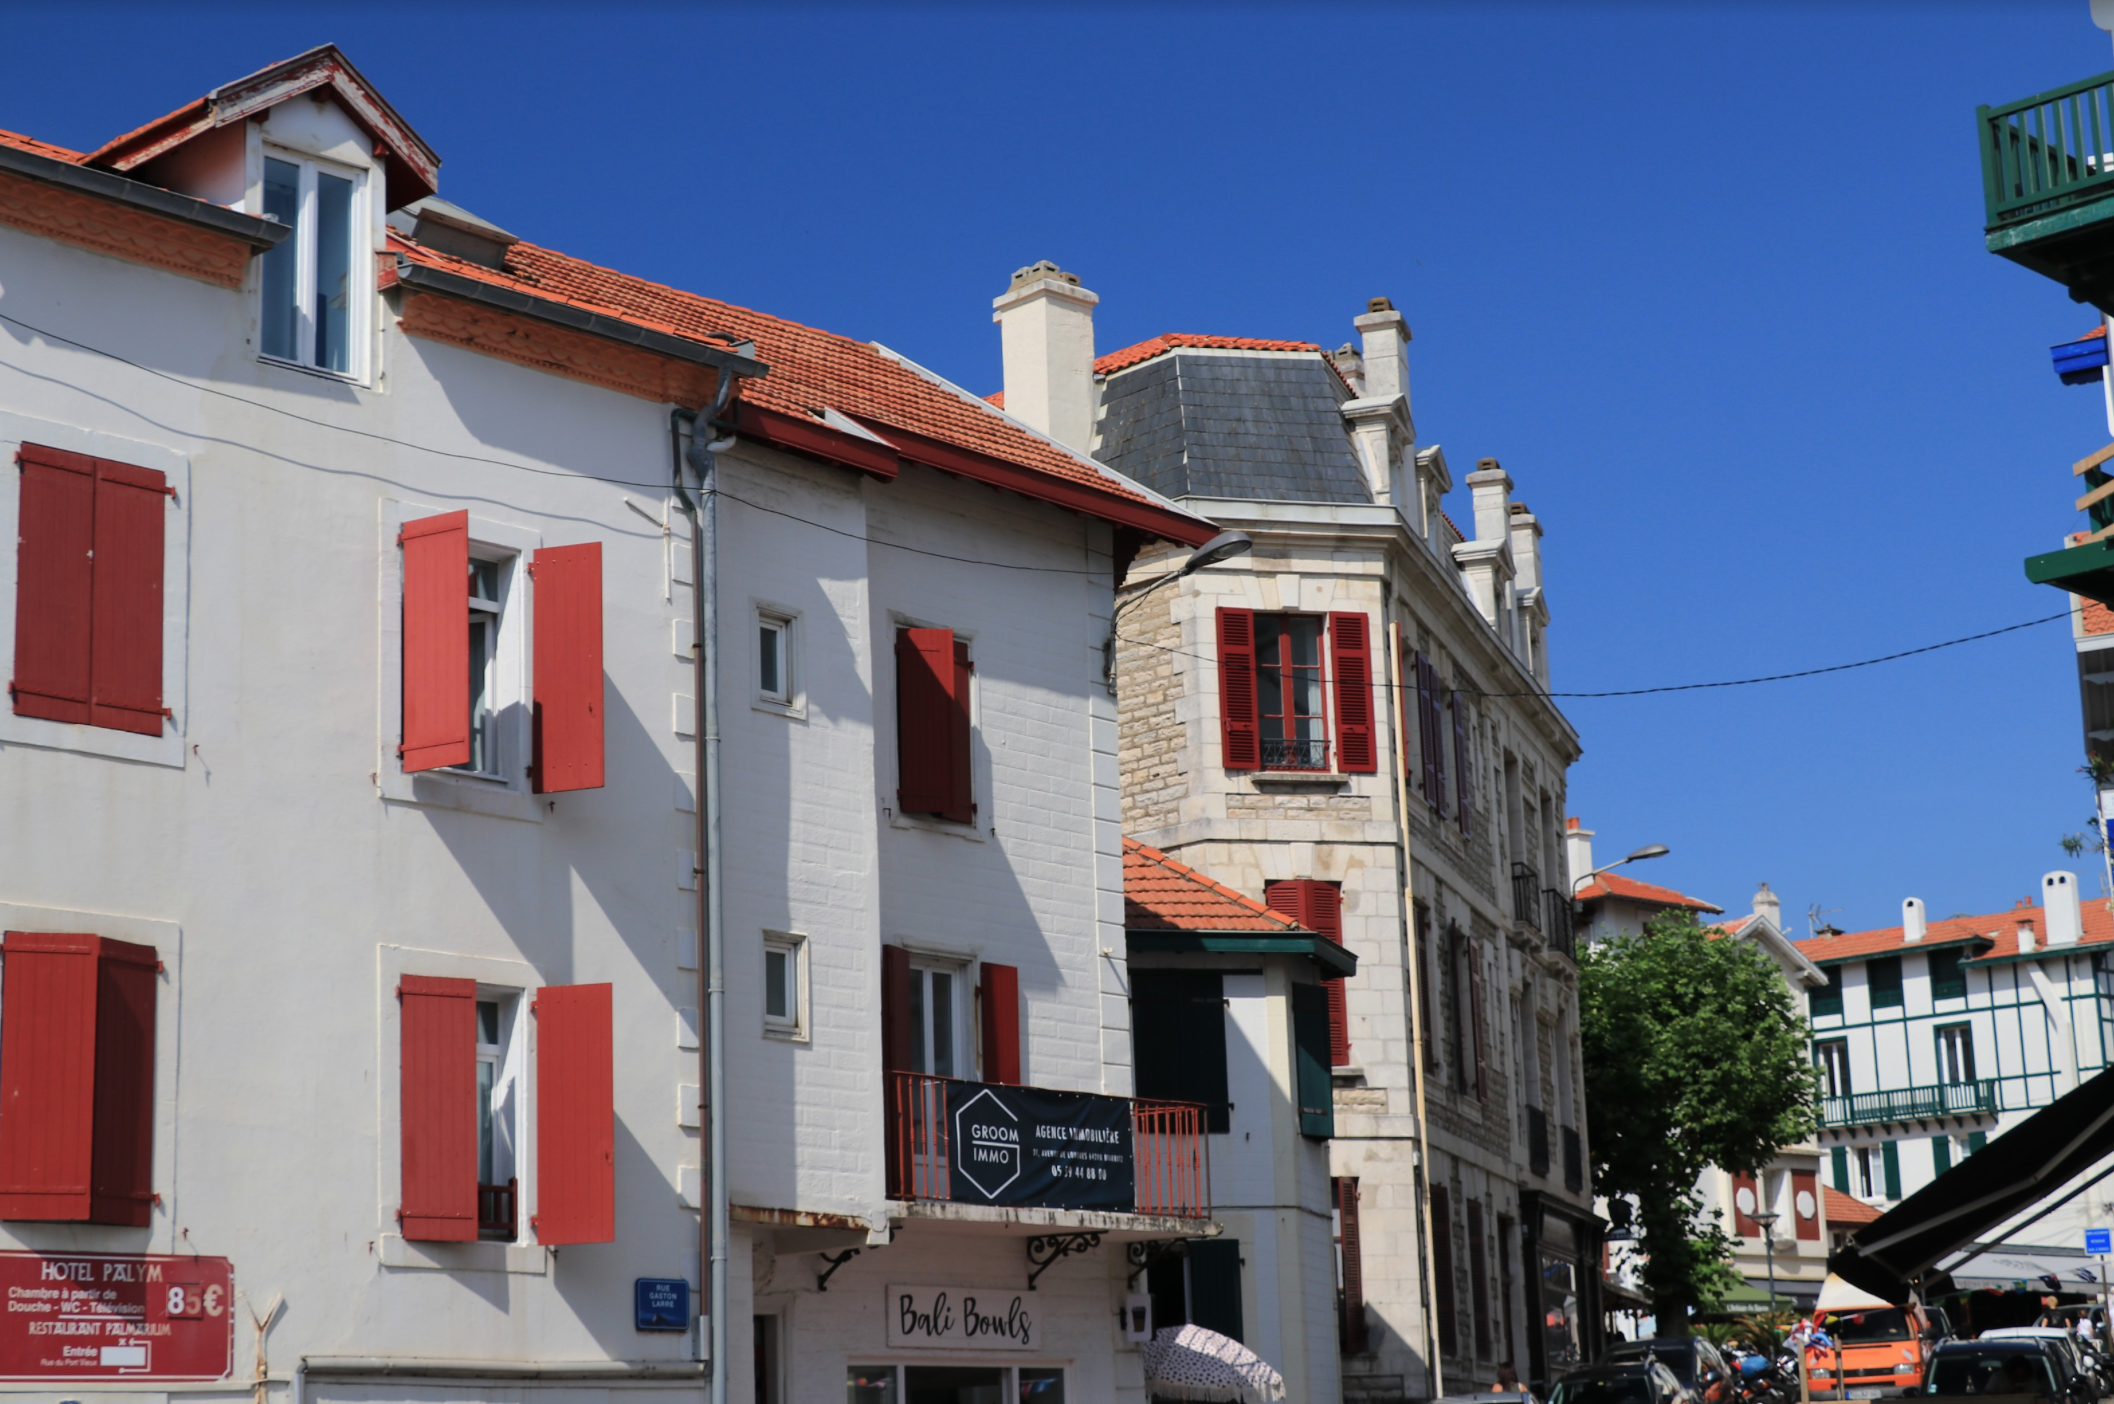 The quaint fishing village, was made over by Napoleon III and his Spanish empress, Eugenie so both ornate French and Spanish influences weave throughout the town's design.